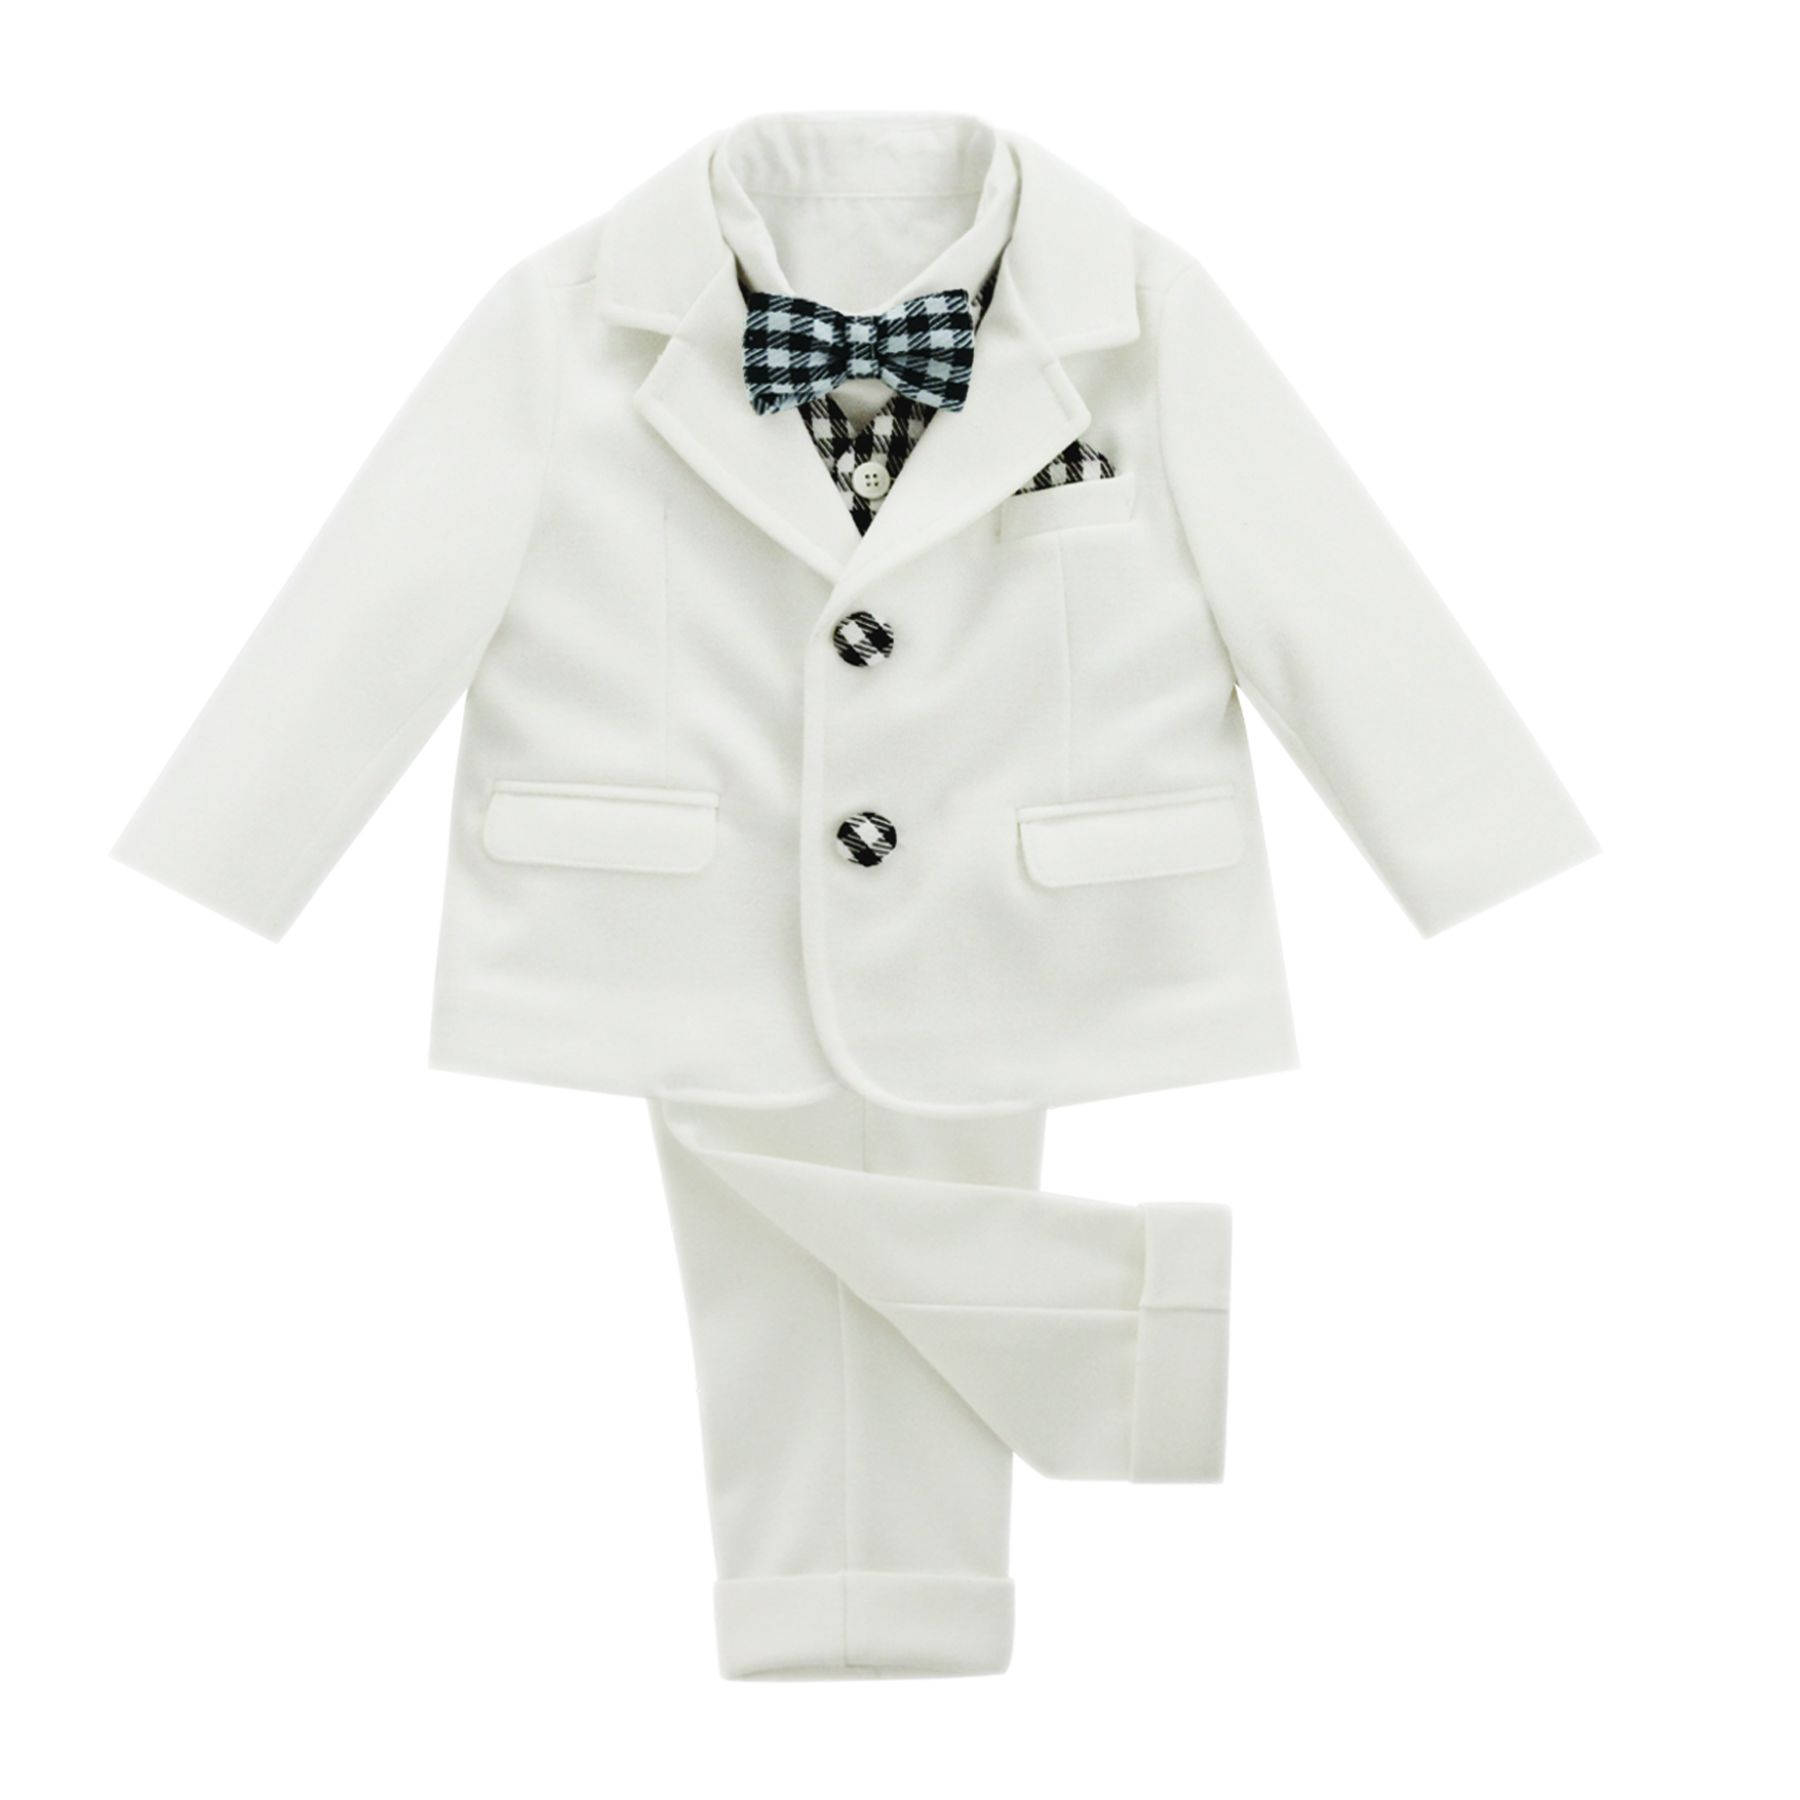 BUFI 6 PIECE SUIT WITH BLACK & WHITE TRIM B10299A